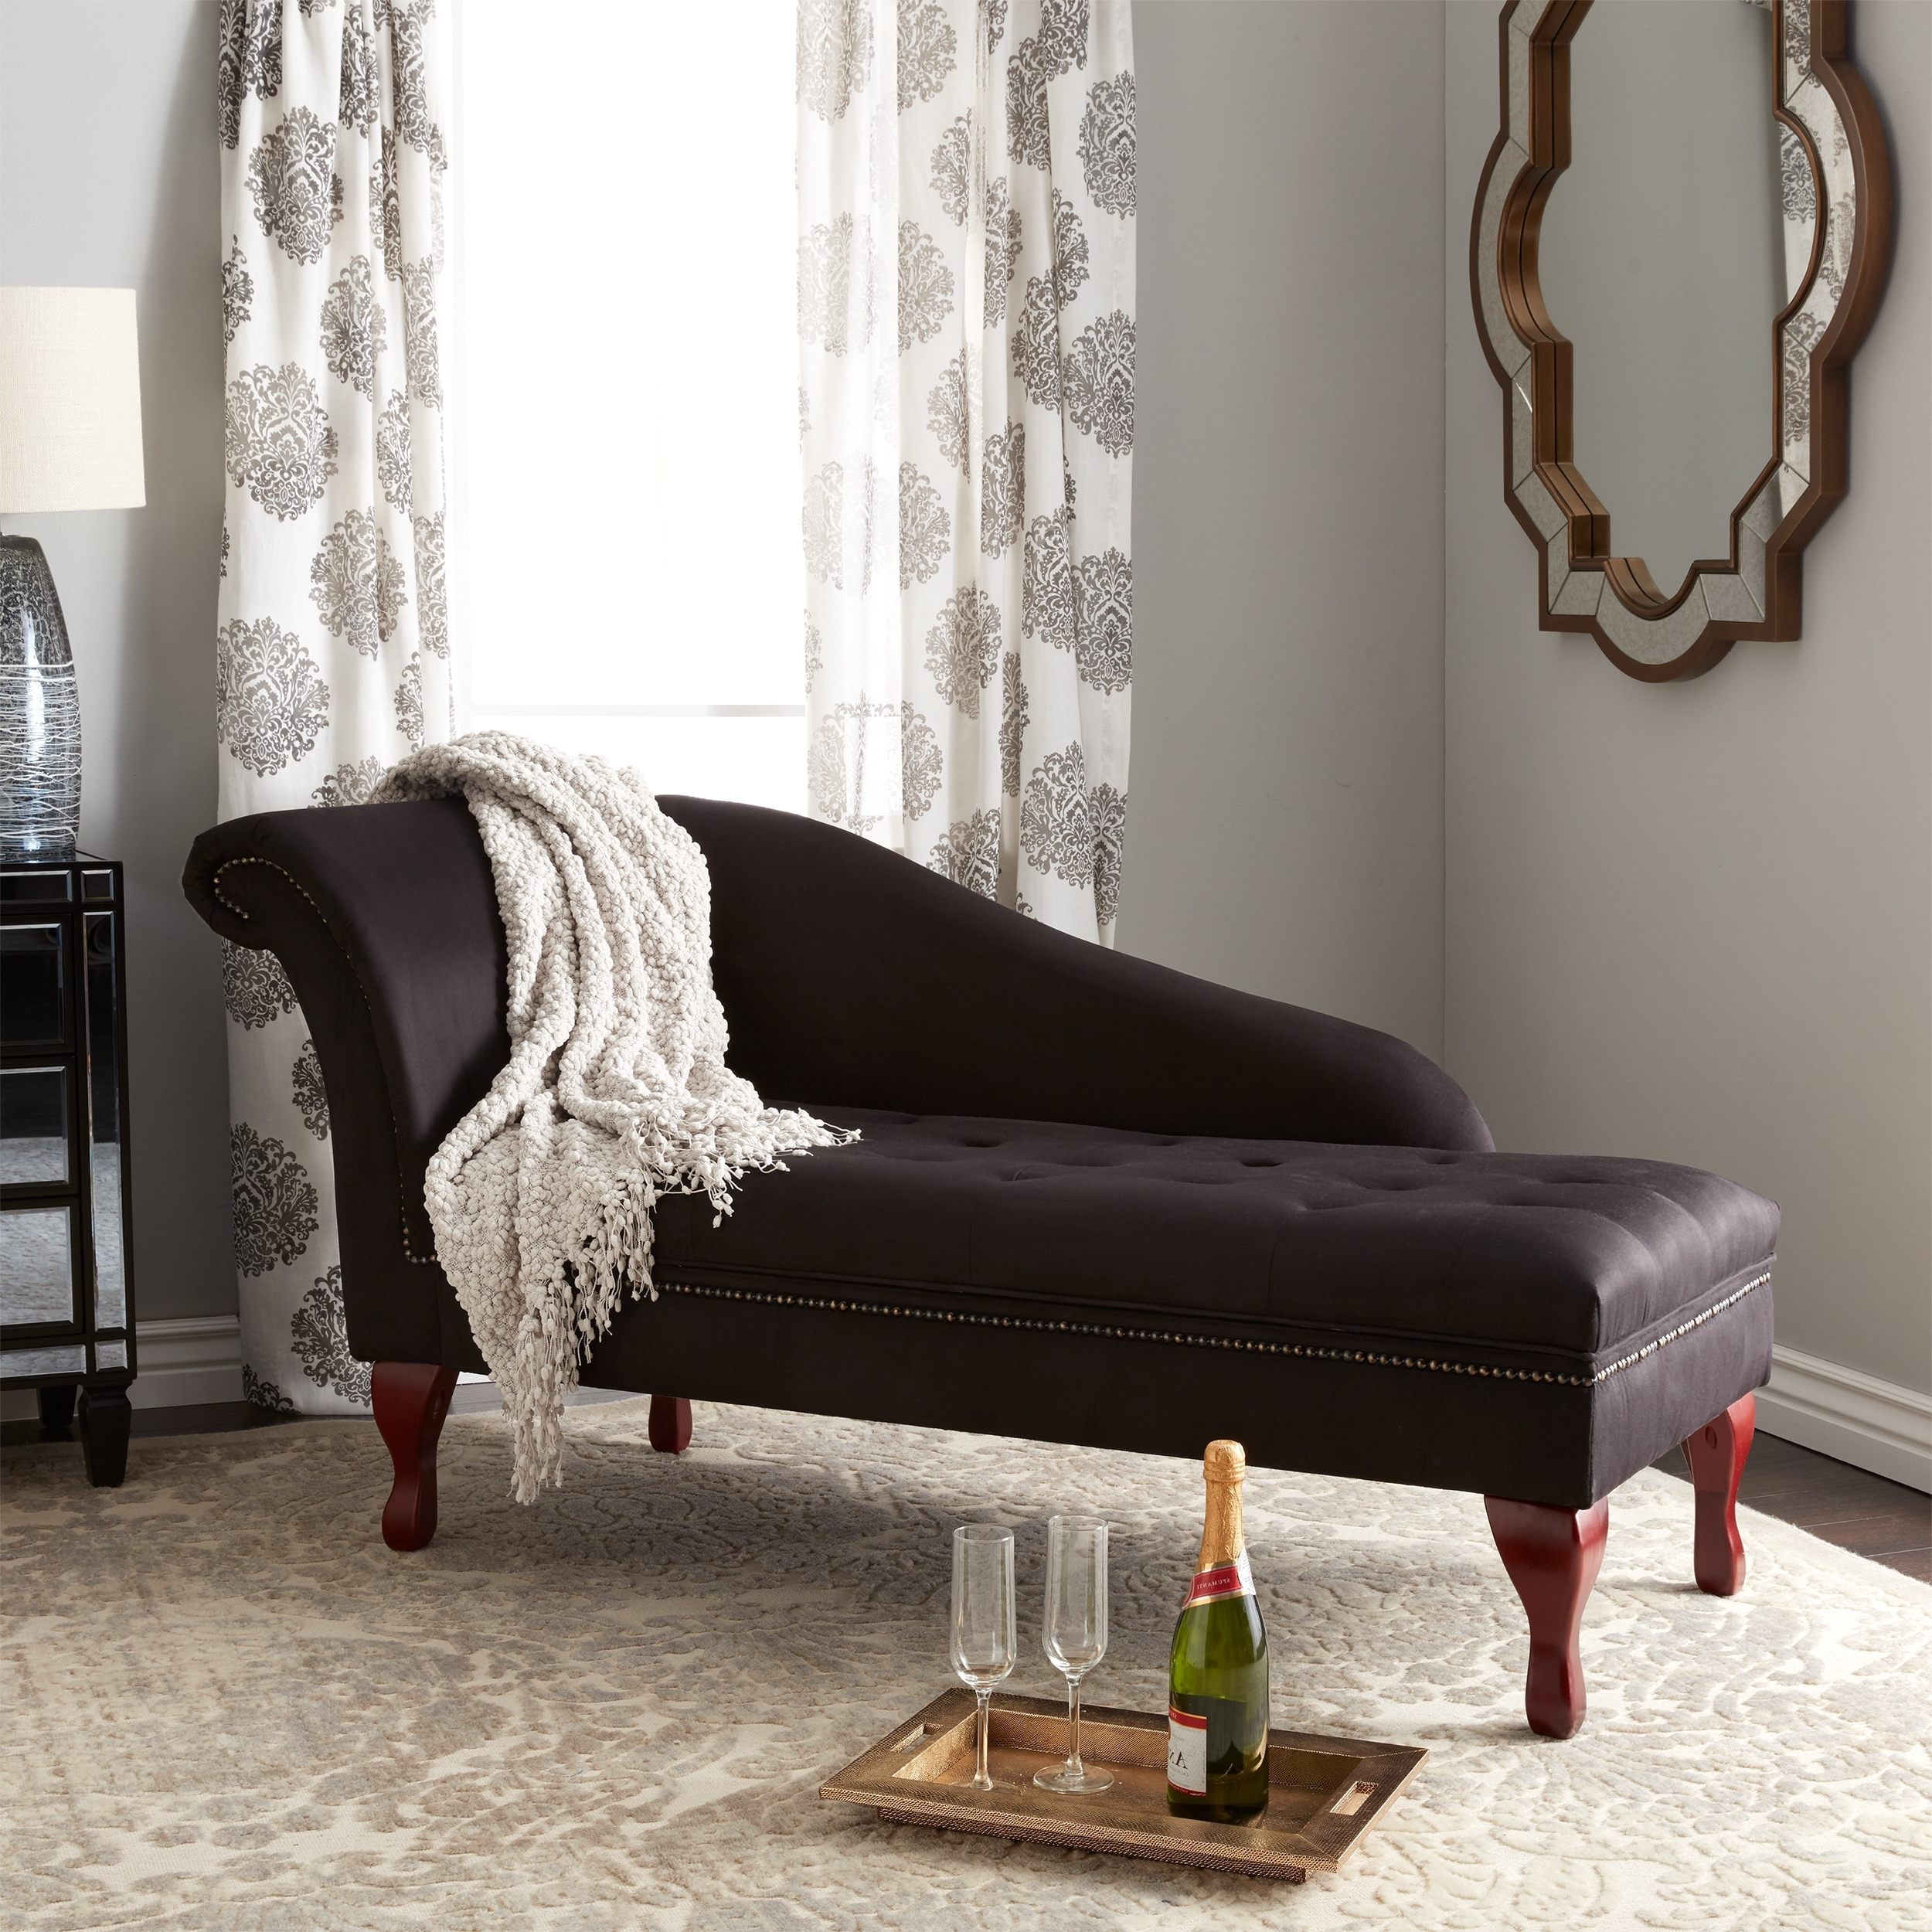 2017 Overstock Chaise Lounges Regarding Simple Living Black Storage Chaise Lounge – Free Shipping Today (View 2 of 15)